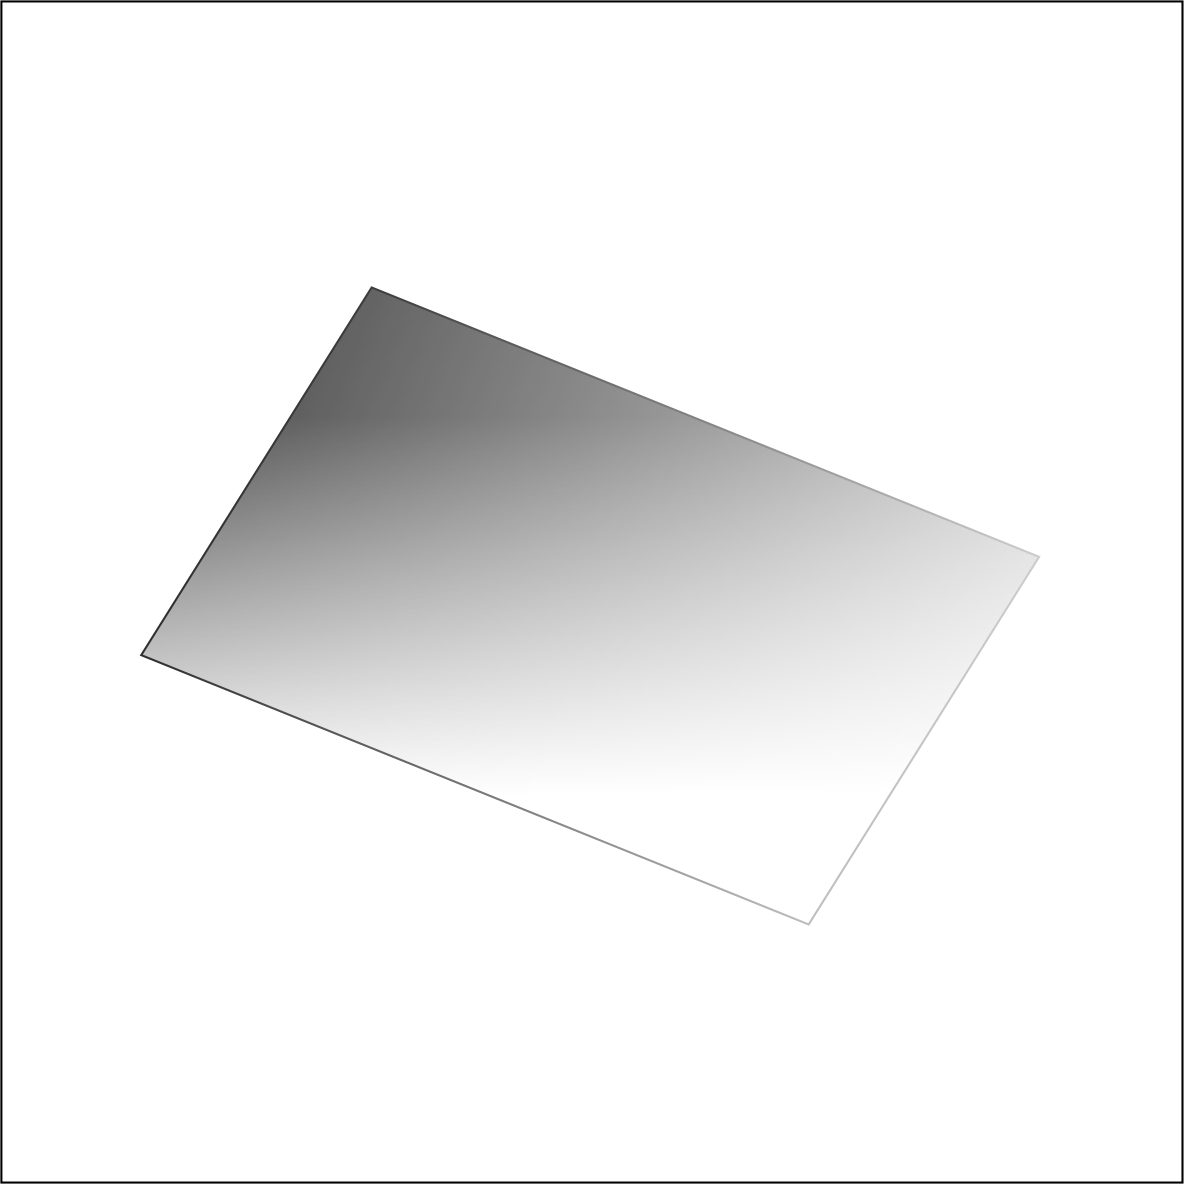 Tiffen ND 6 graduated Filter by Accord Equips